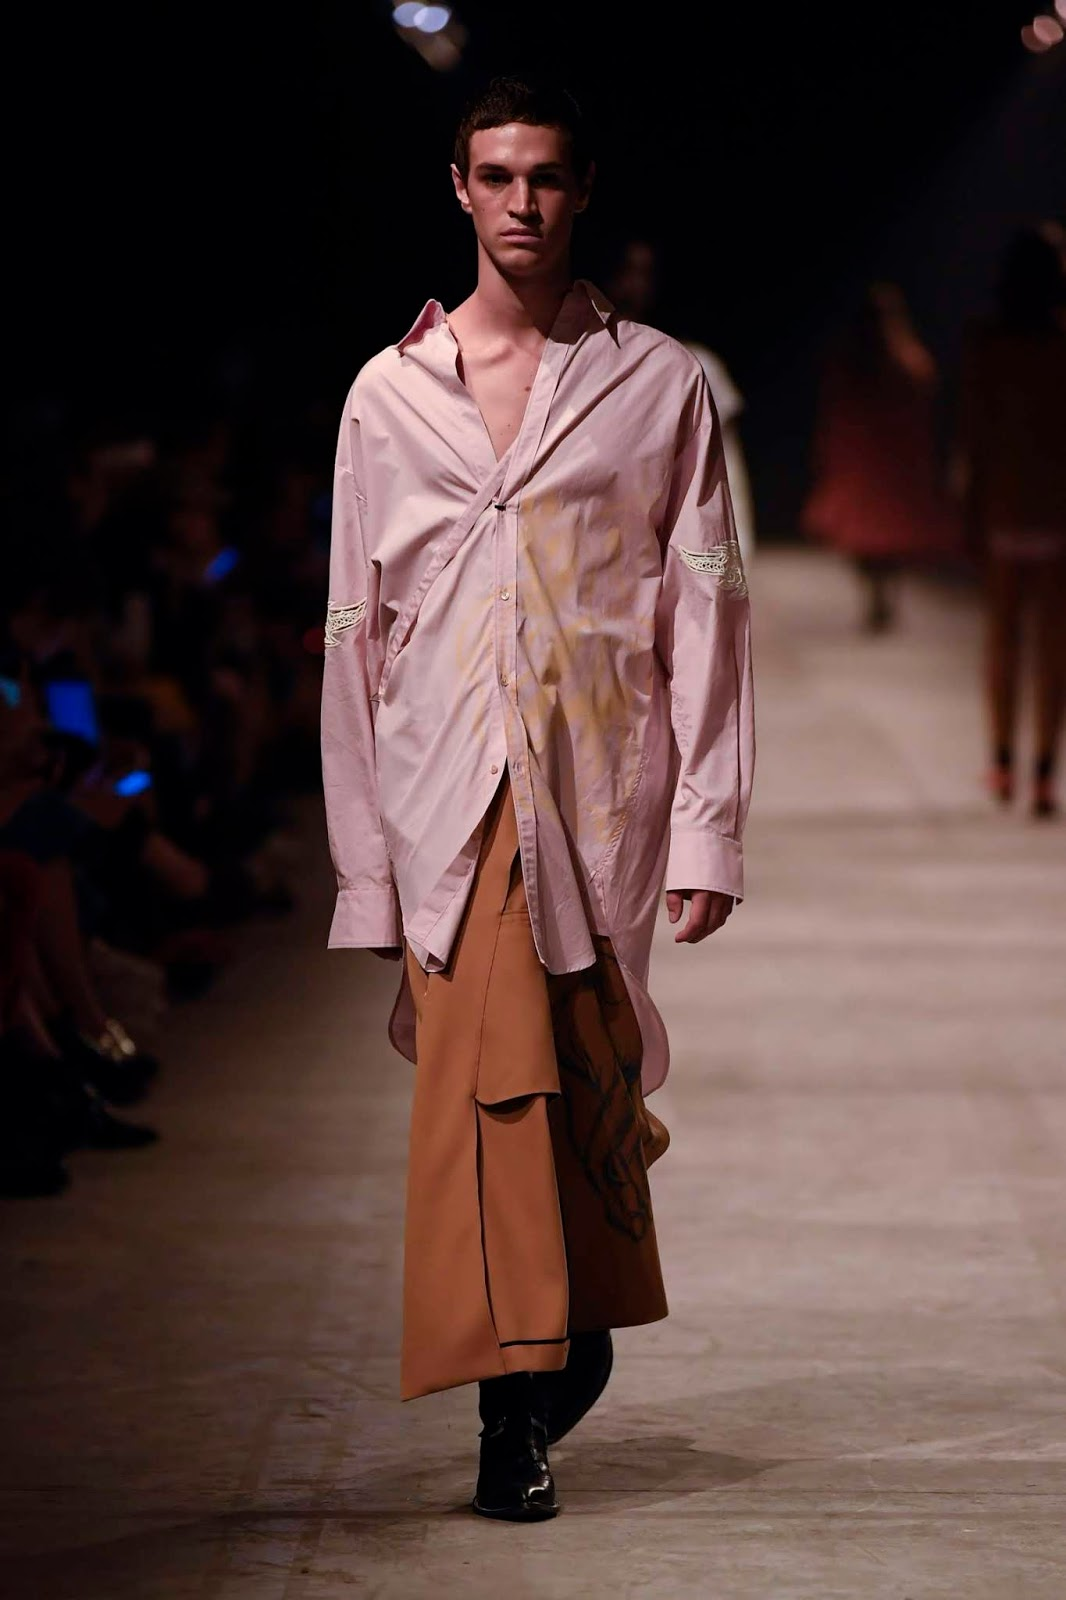 bed jw ford spring summer  runway show pitti immagine uomo male fashion trends